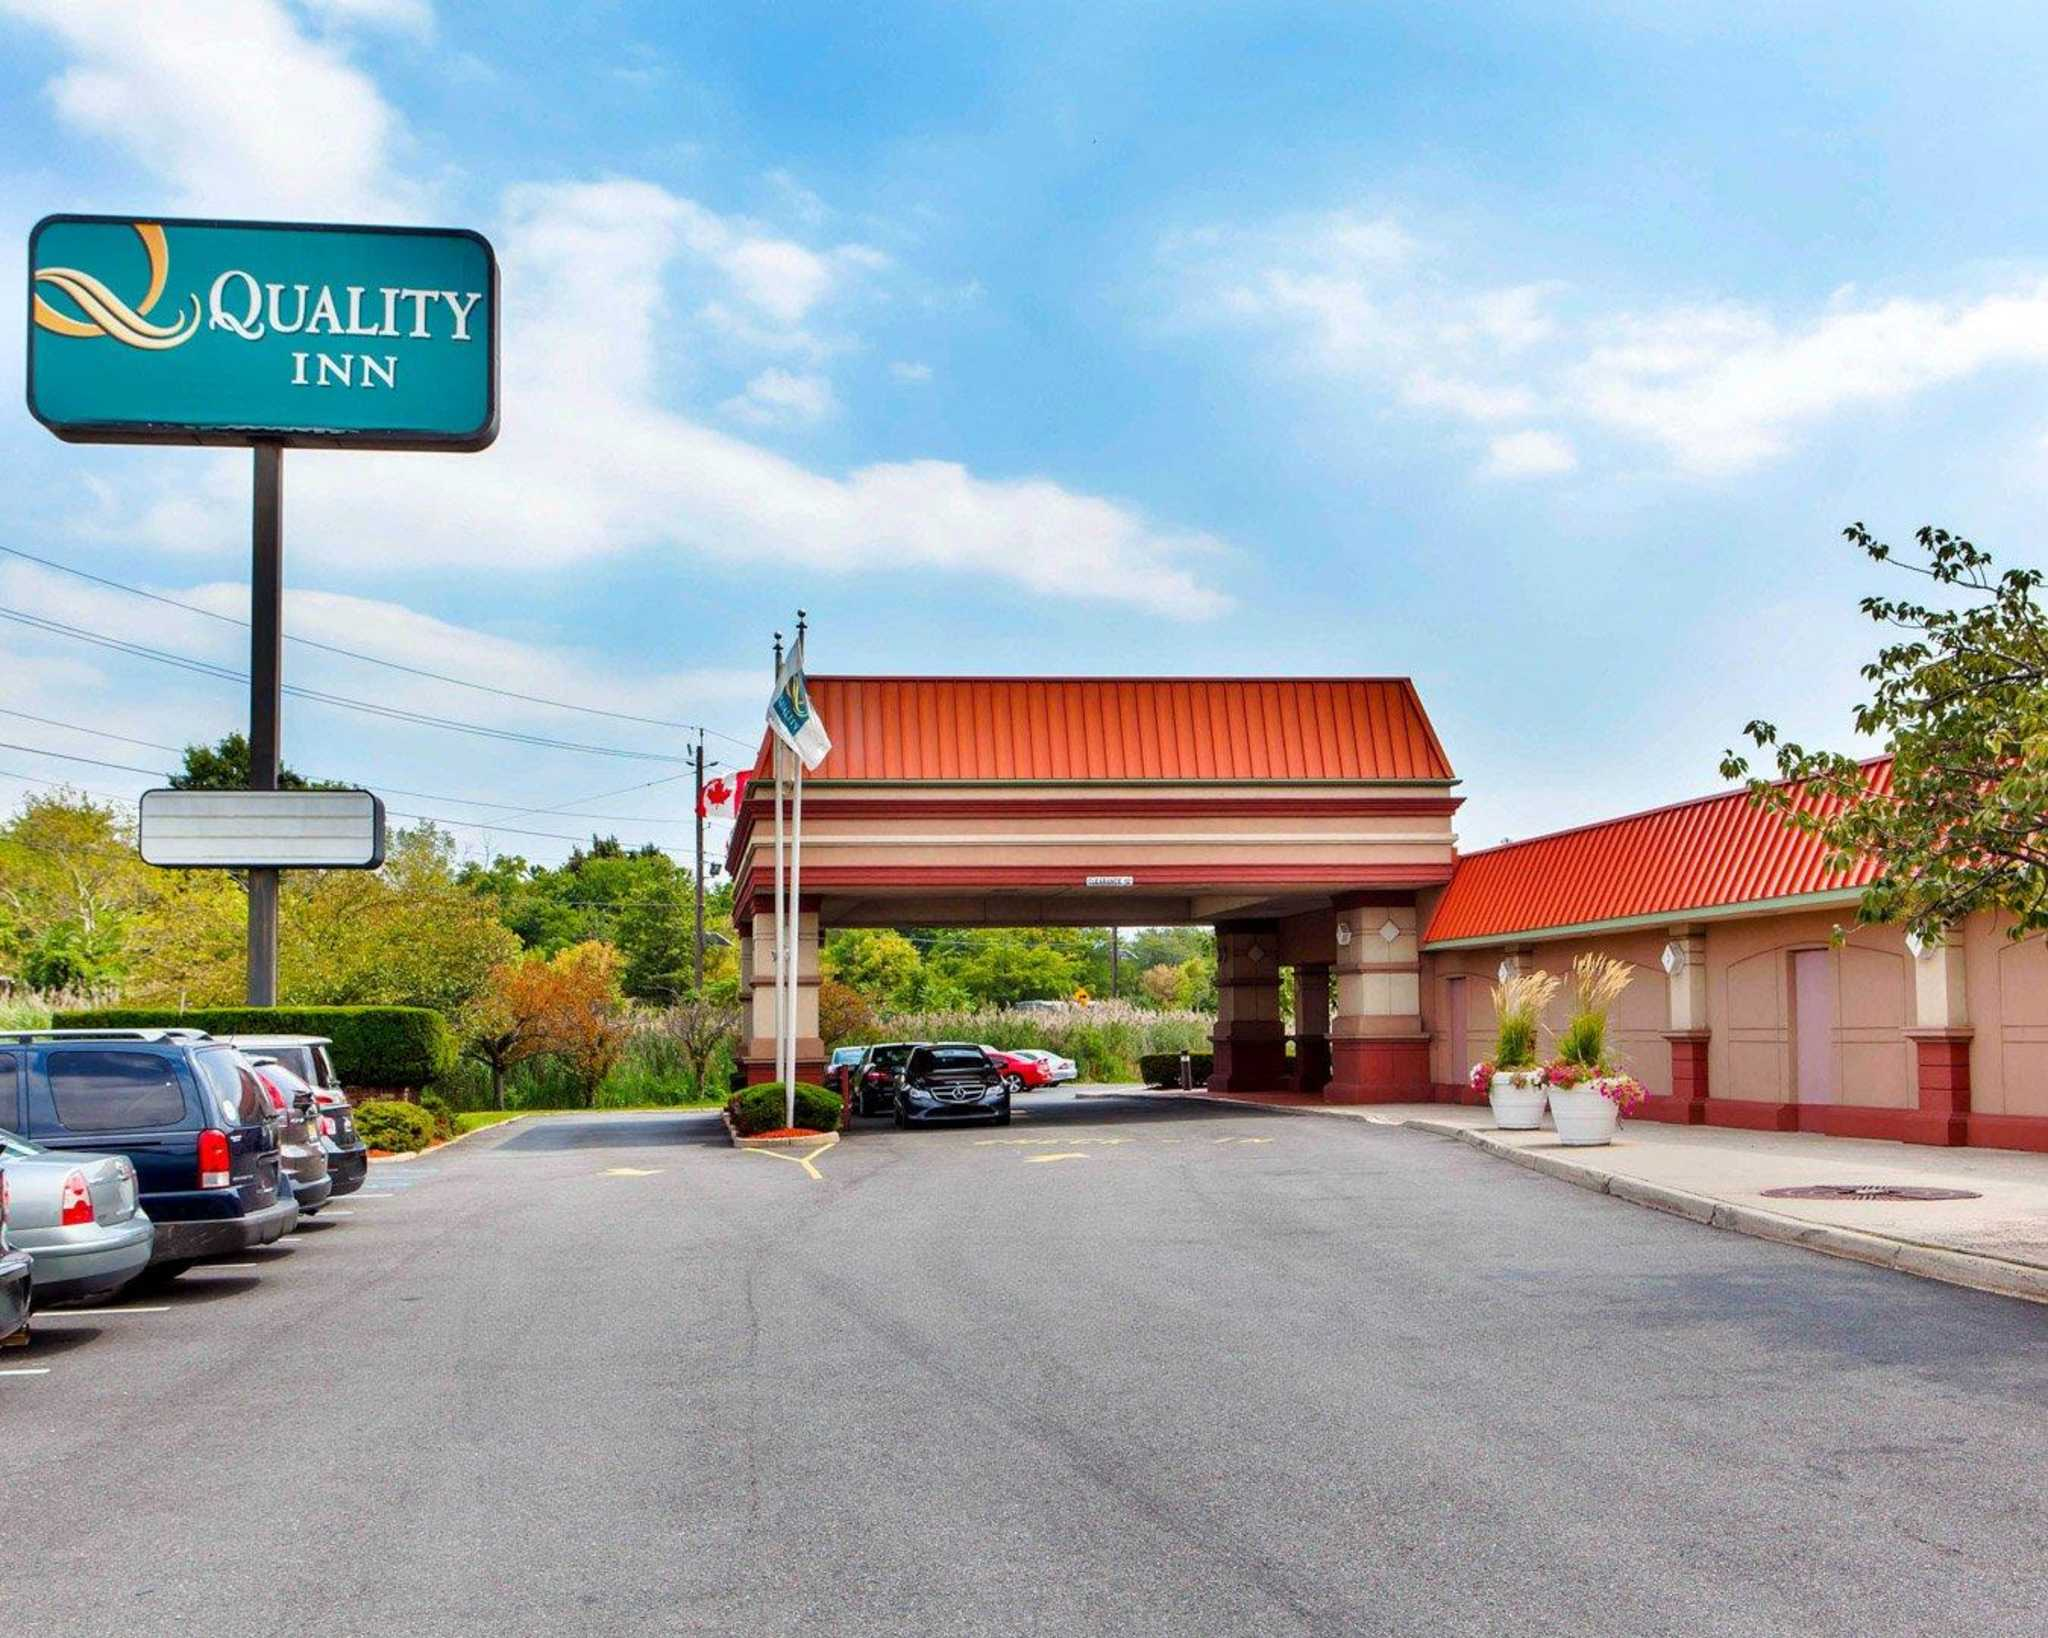 Quality Inn Meadowlands image 2